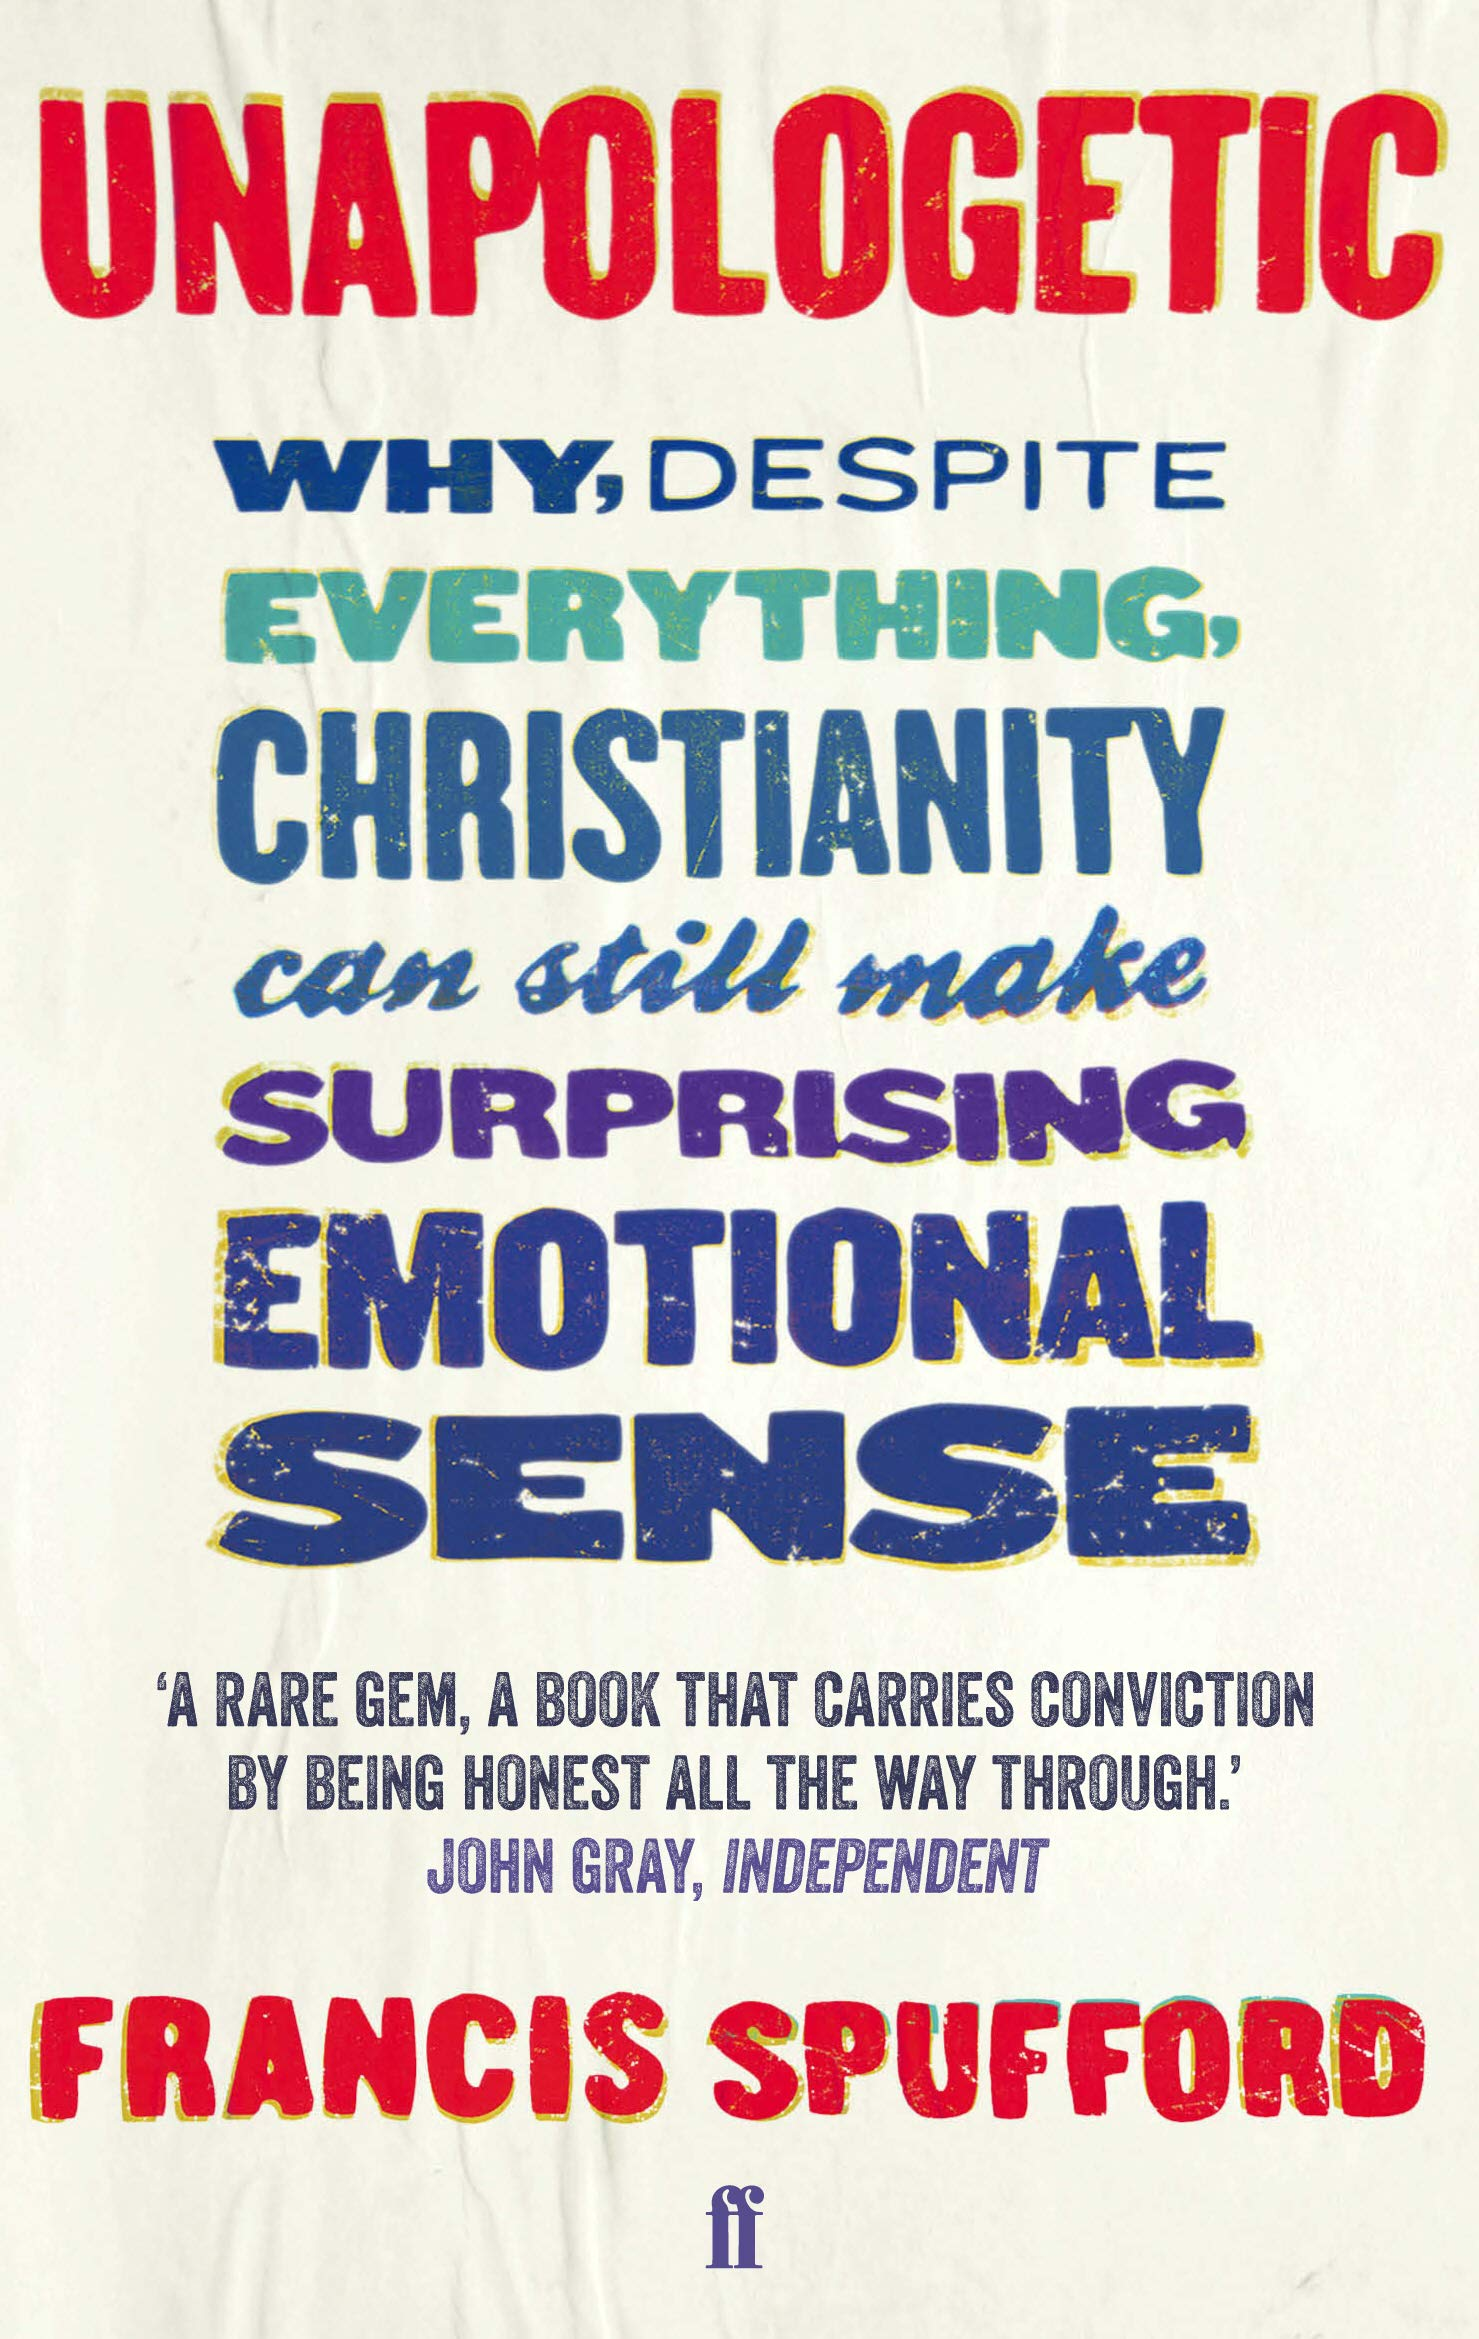 Unapologetic: Why, despite everything, Christianity can still make  surprising emotional sense: Amazon.co.uk: Spufford, Francis, Spufford,  Francis: 9780571225224: Books